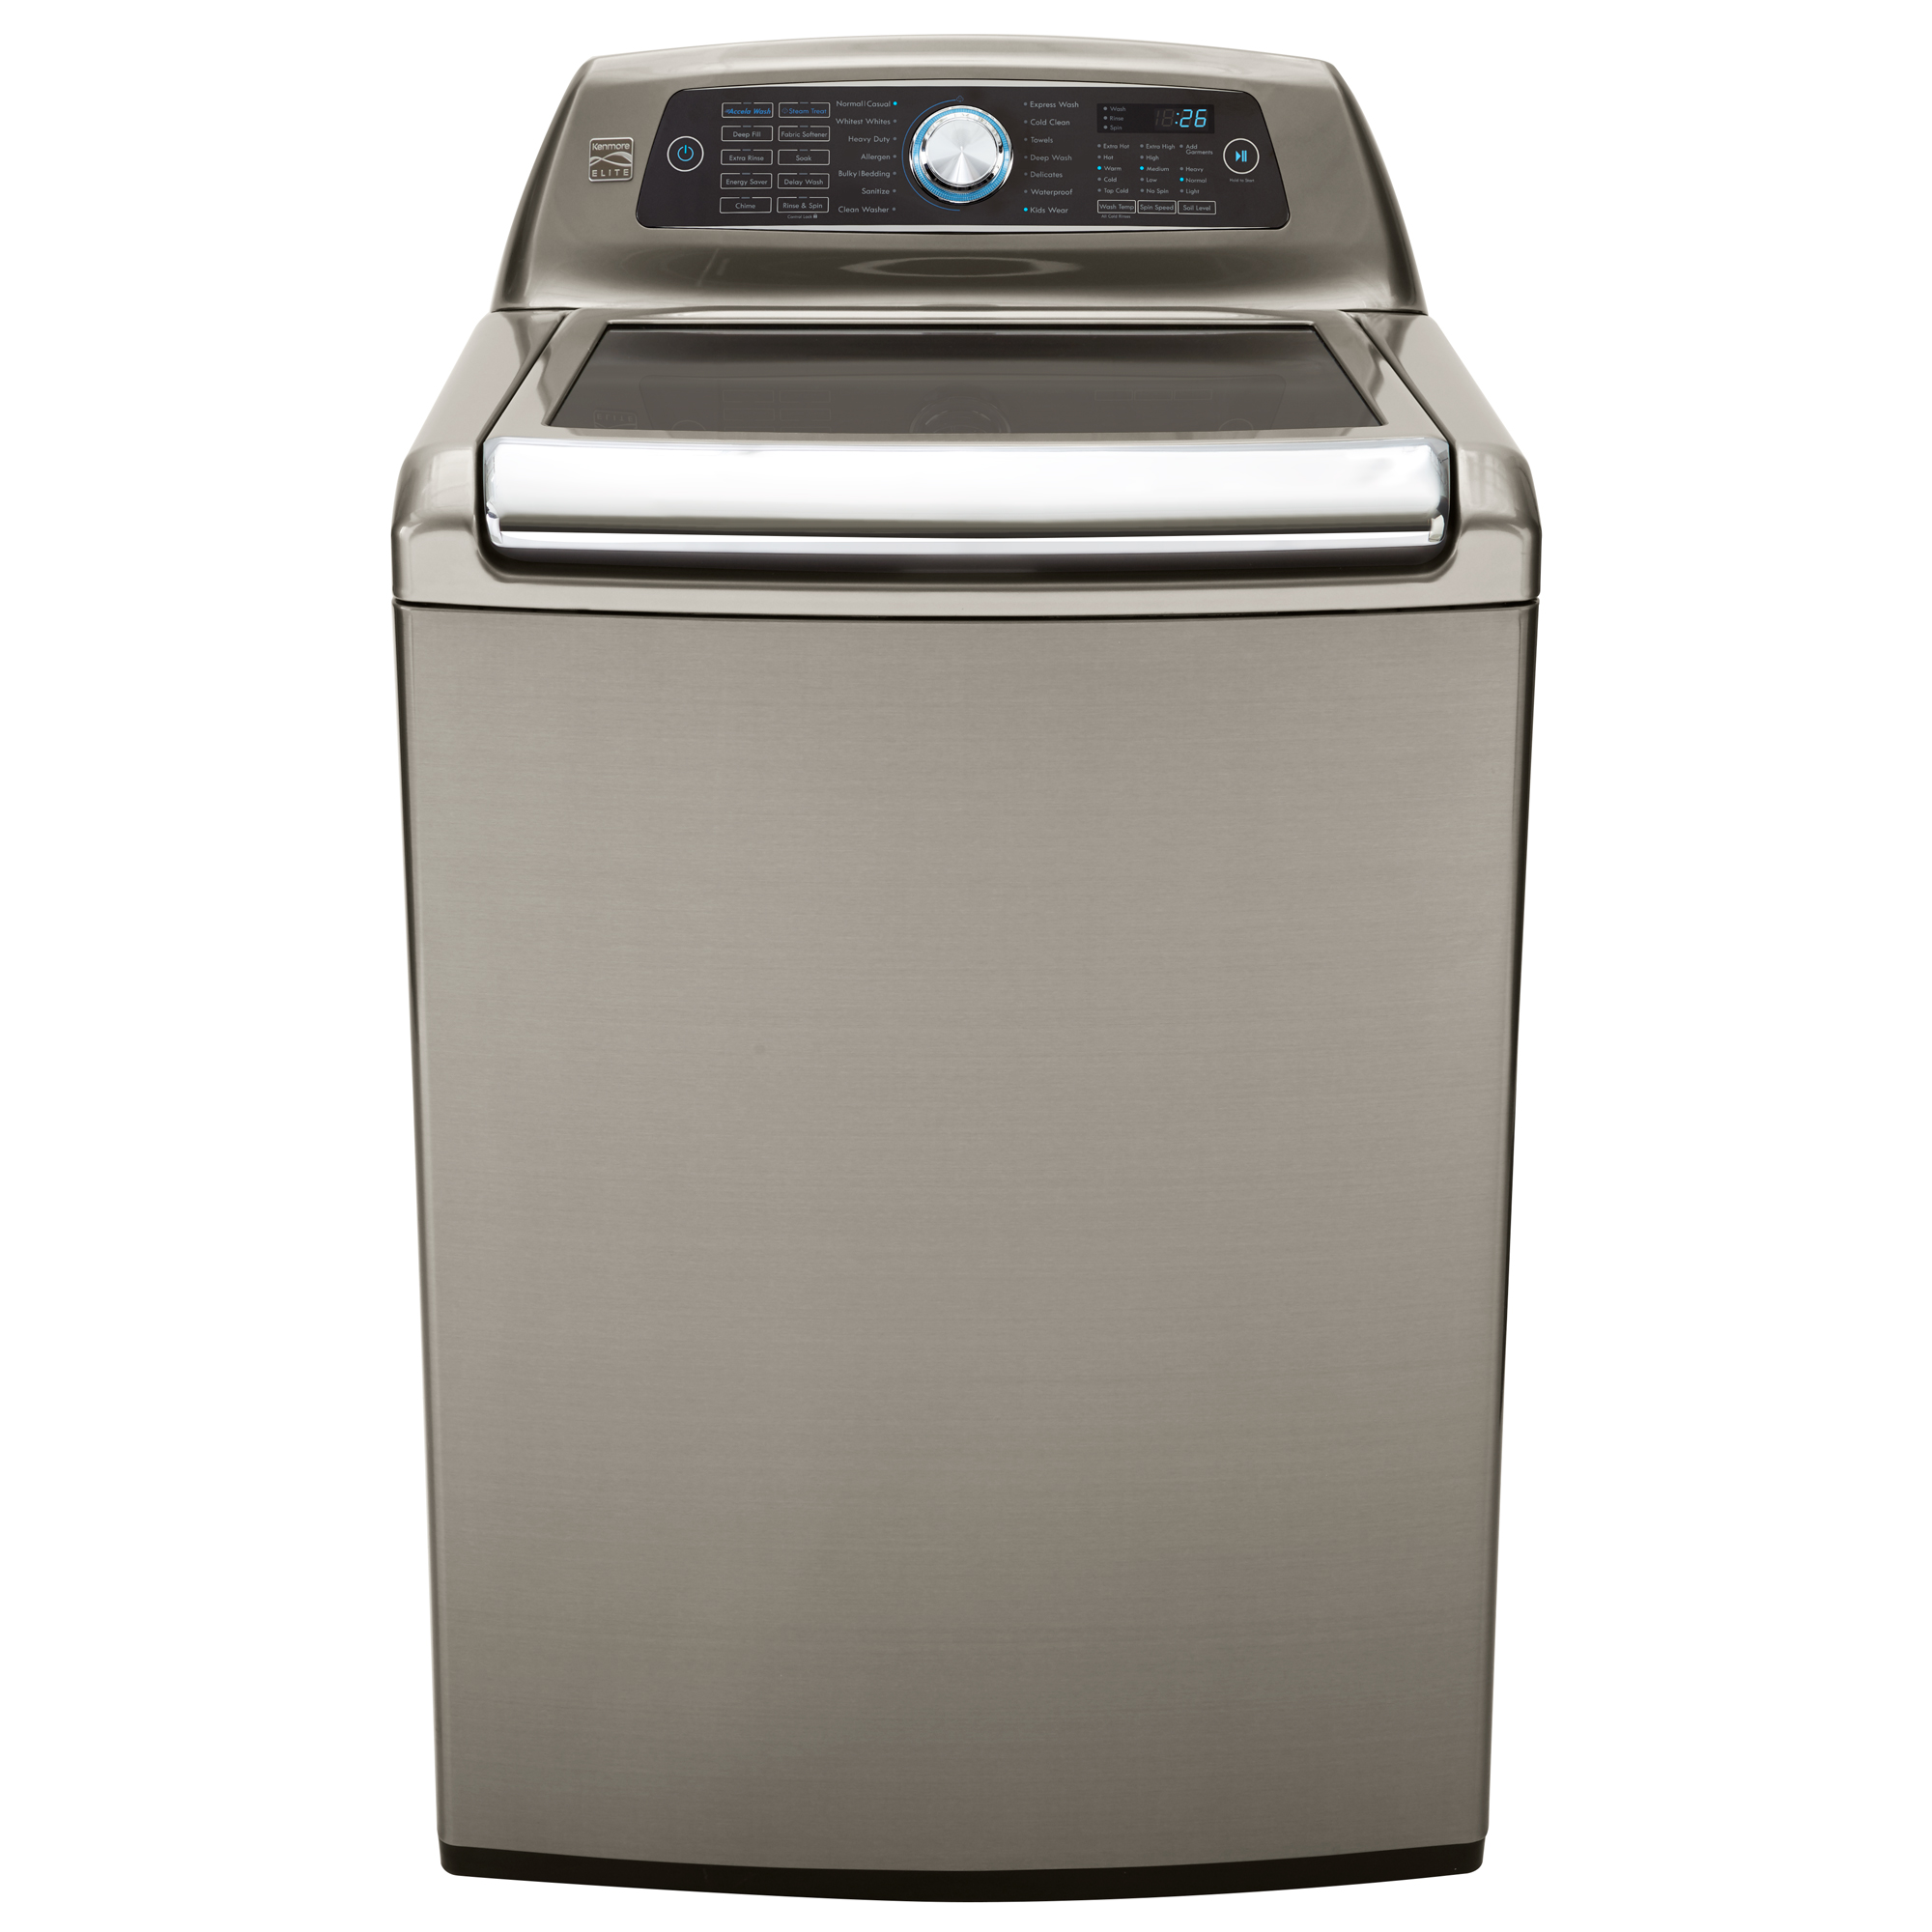 kenmore elite 31553 5 2 cu ft top load washer w accela wash gas dryer i d be happy for any sears gas dryer diagram just to [ 2000 x 2000 Pixel ]